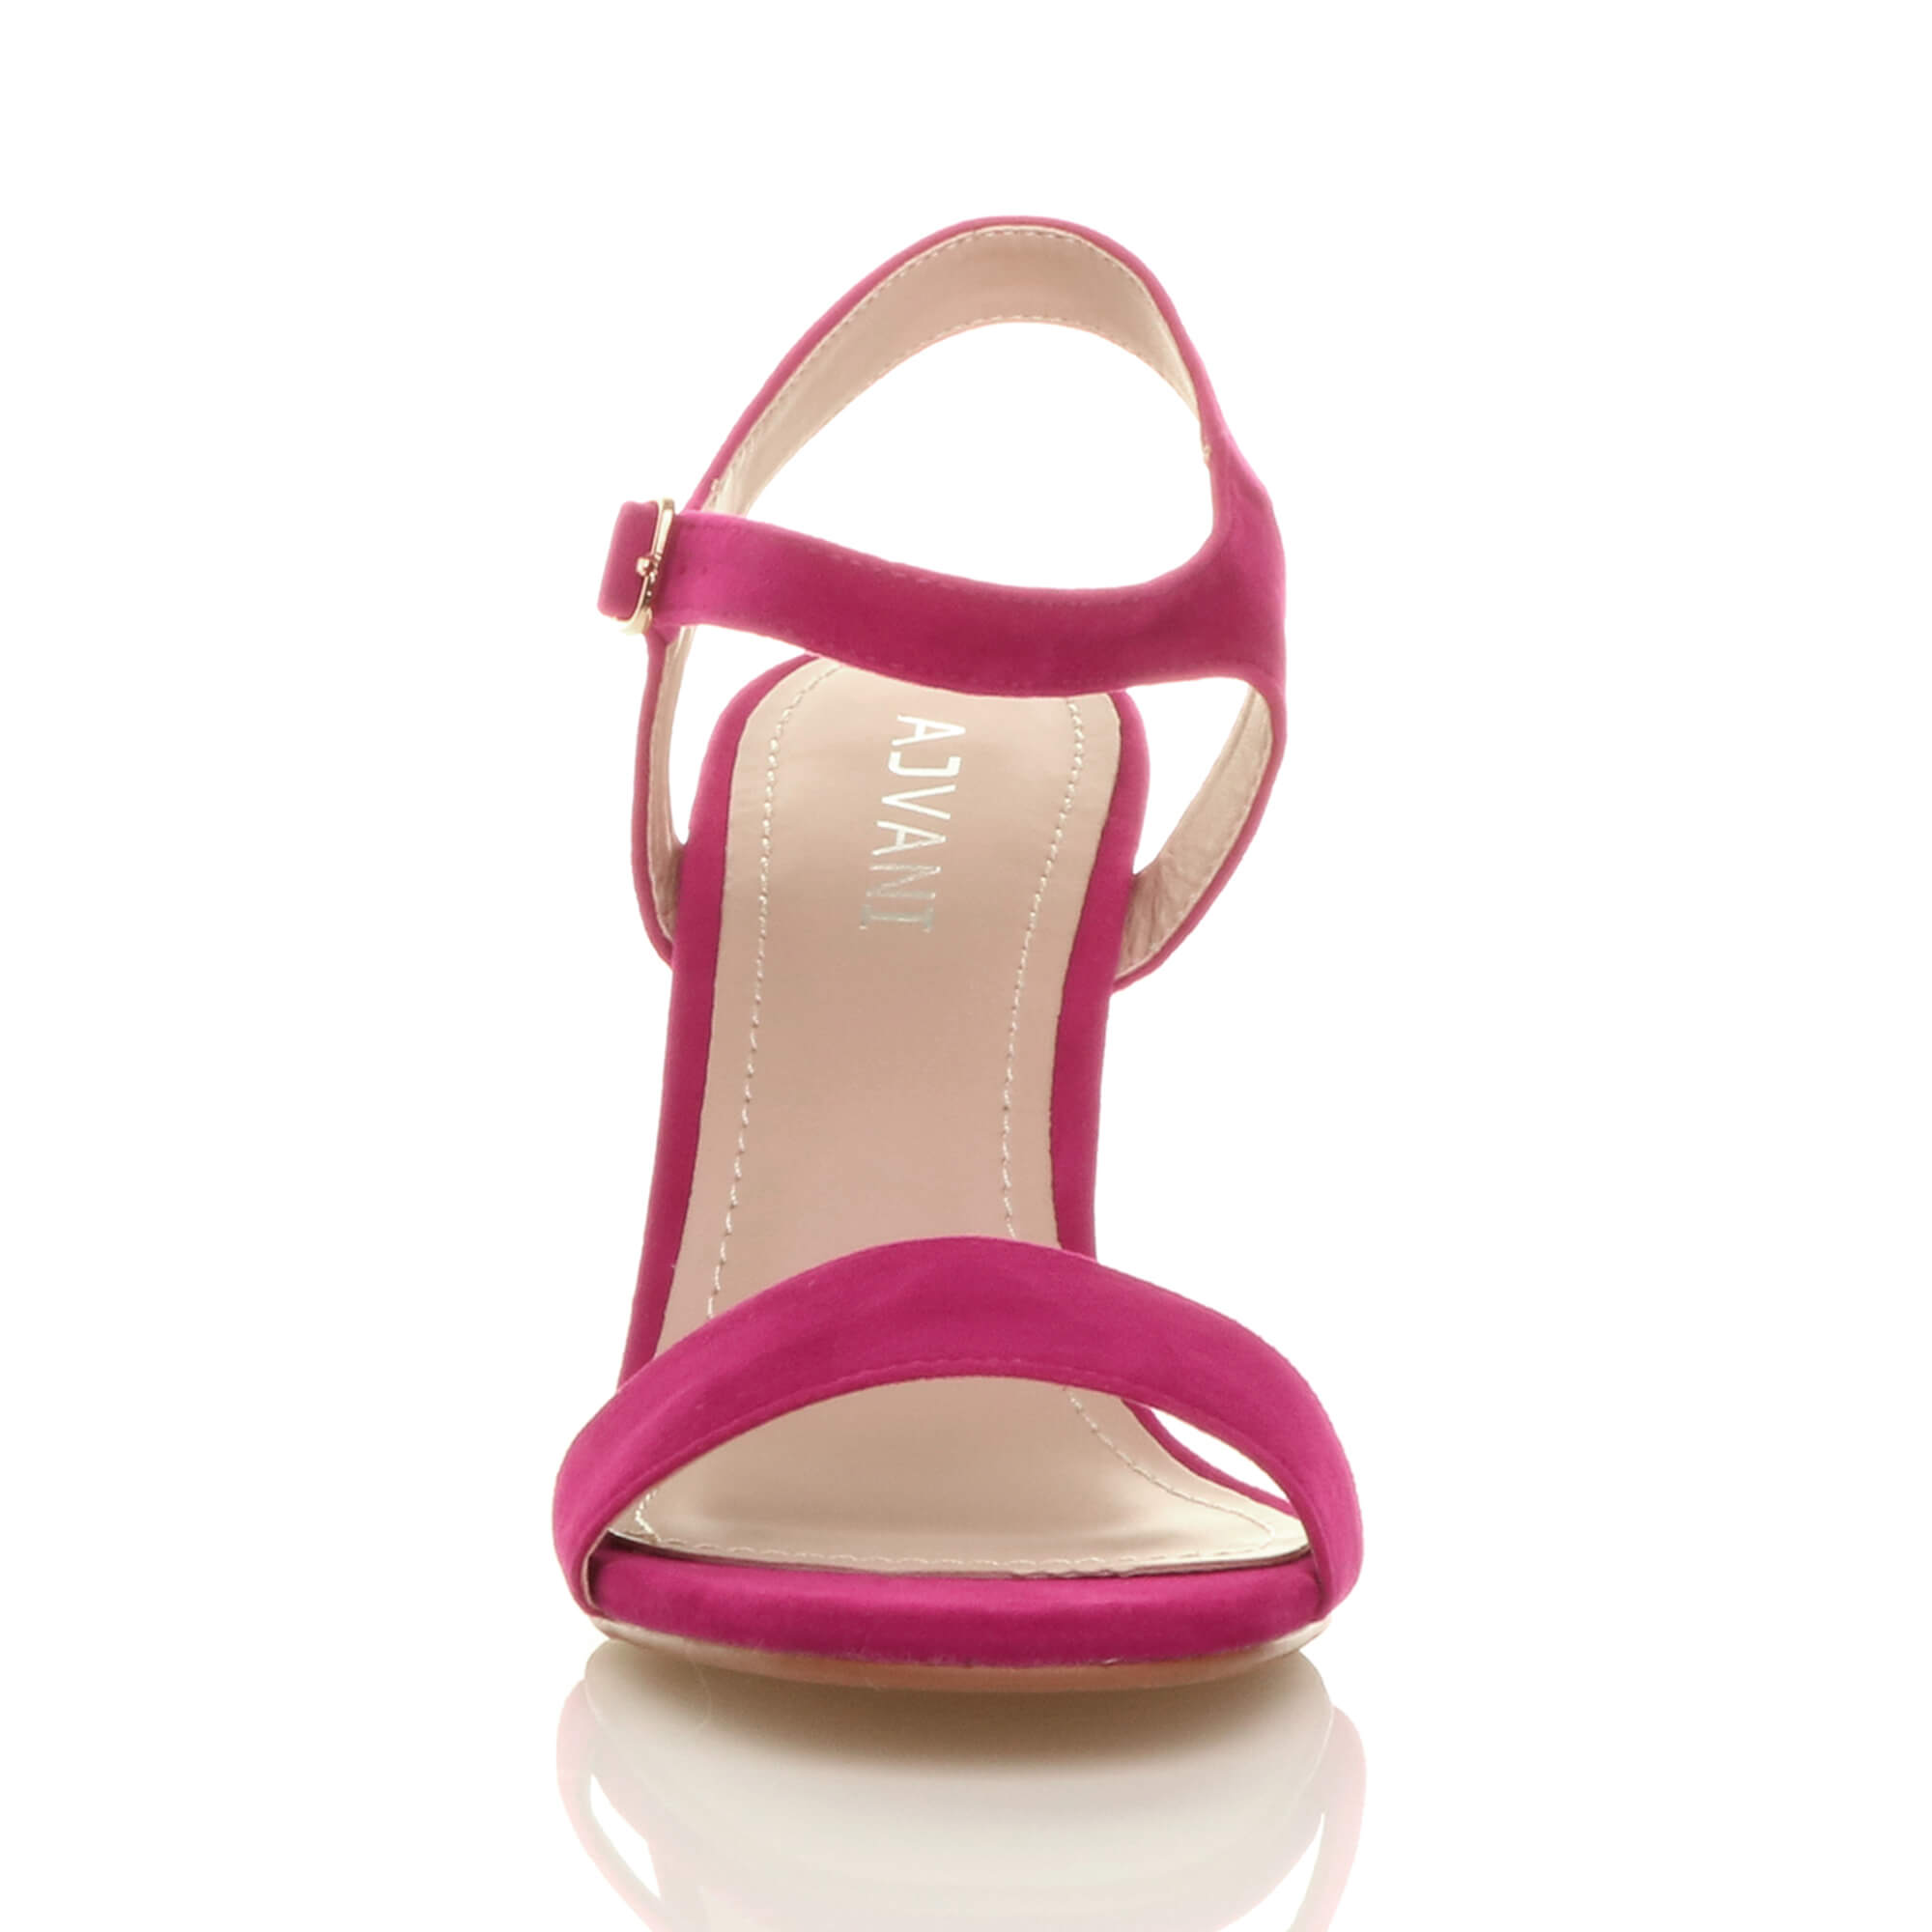 WOMENS-LADIES-HIGH-HEEL-BUCKLE-STRAPPY-BASIC-BARELY-THERE-SANDALS-SHOES-SIZE thumbnail 34